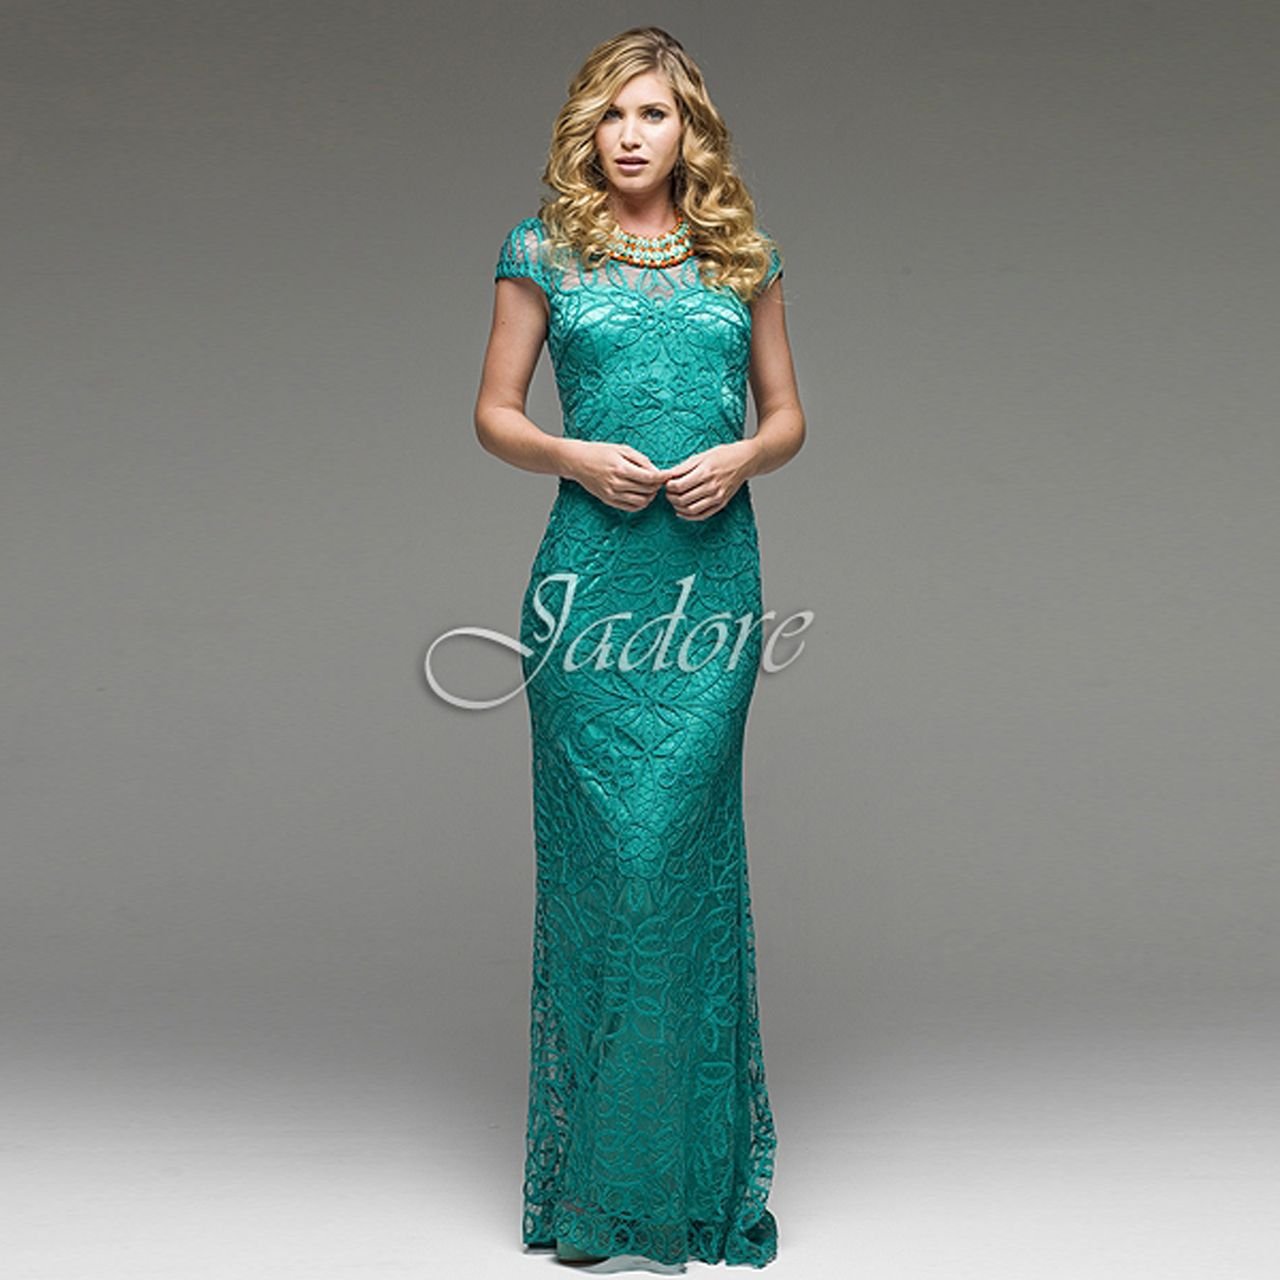 Fashionably Yours - Lilian Lace Bridemaid Dresses In Jade, $499.00 ...